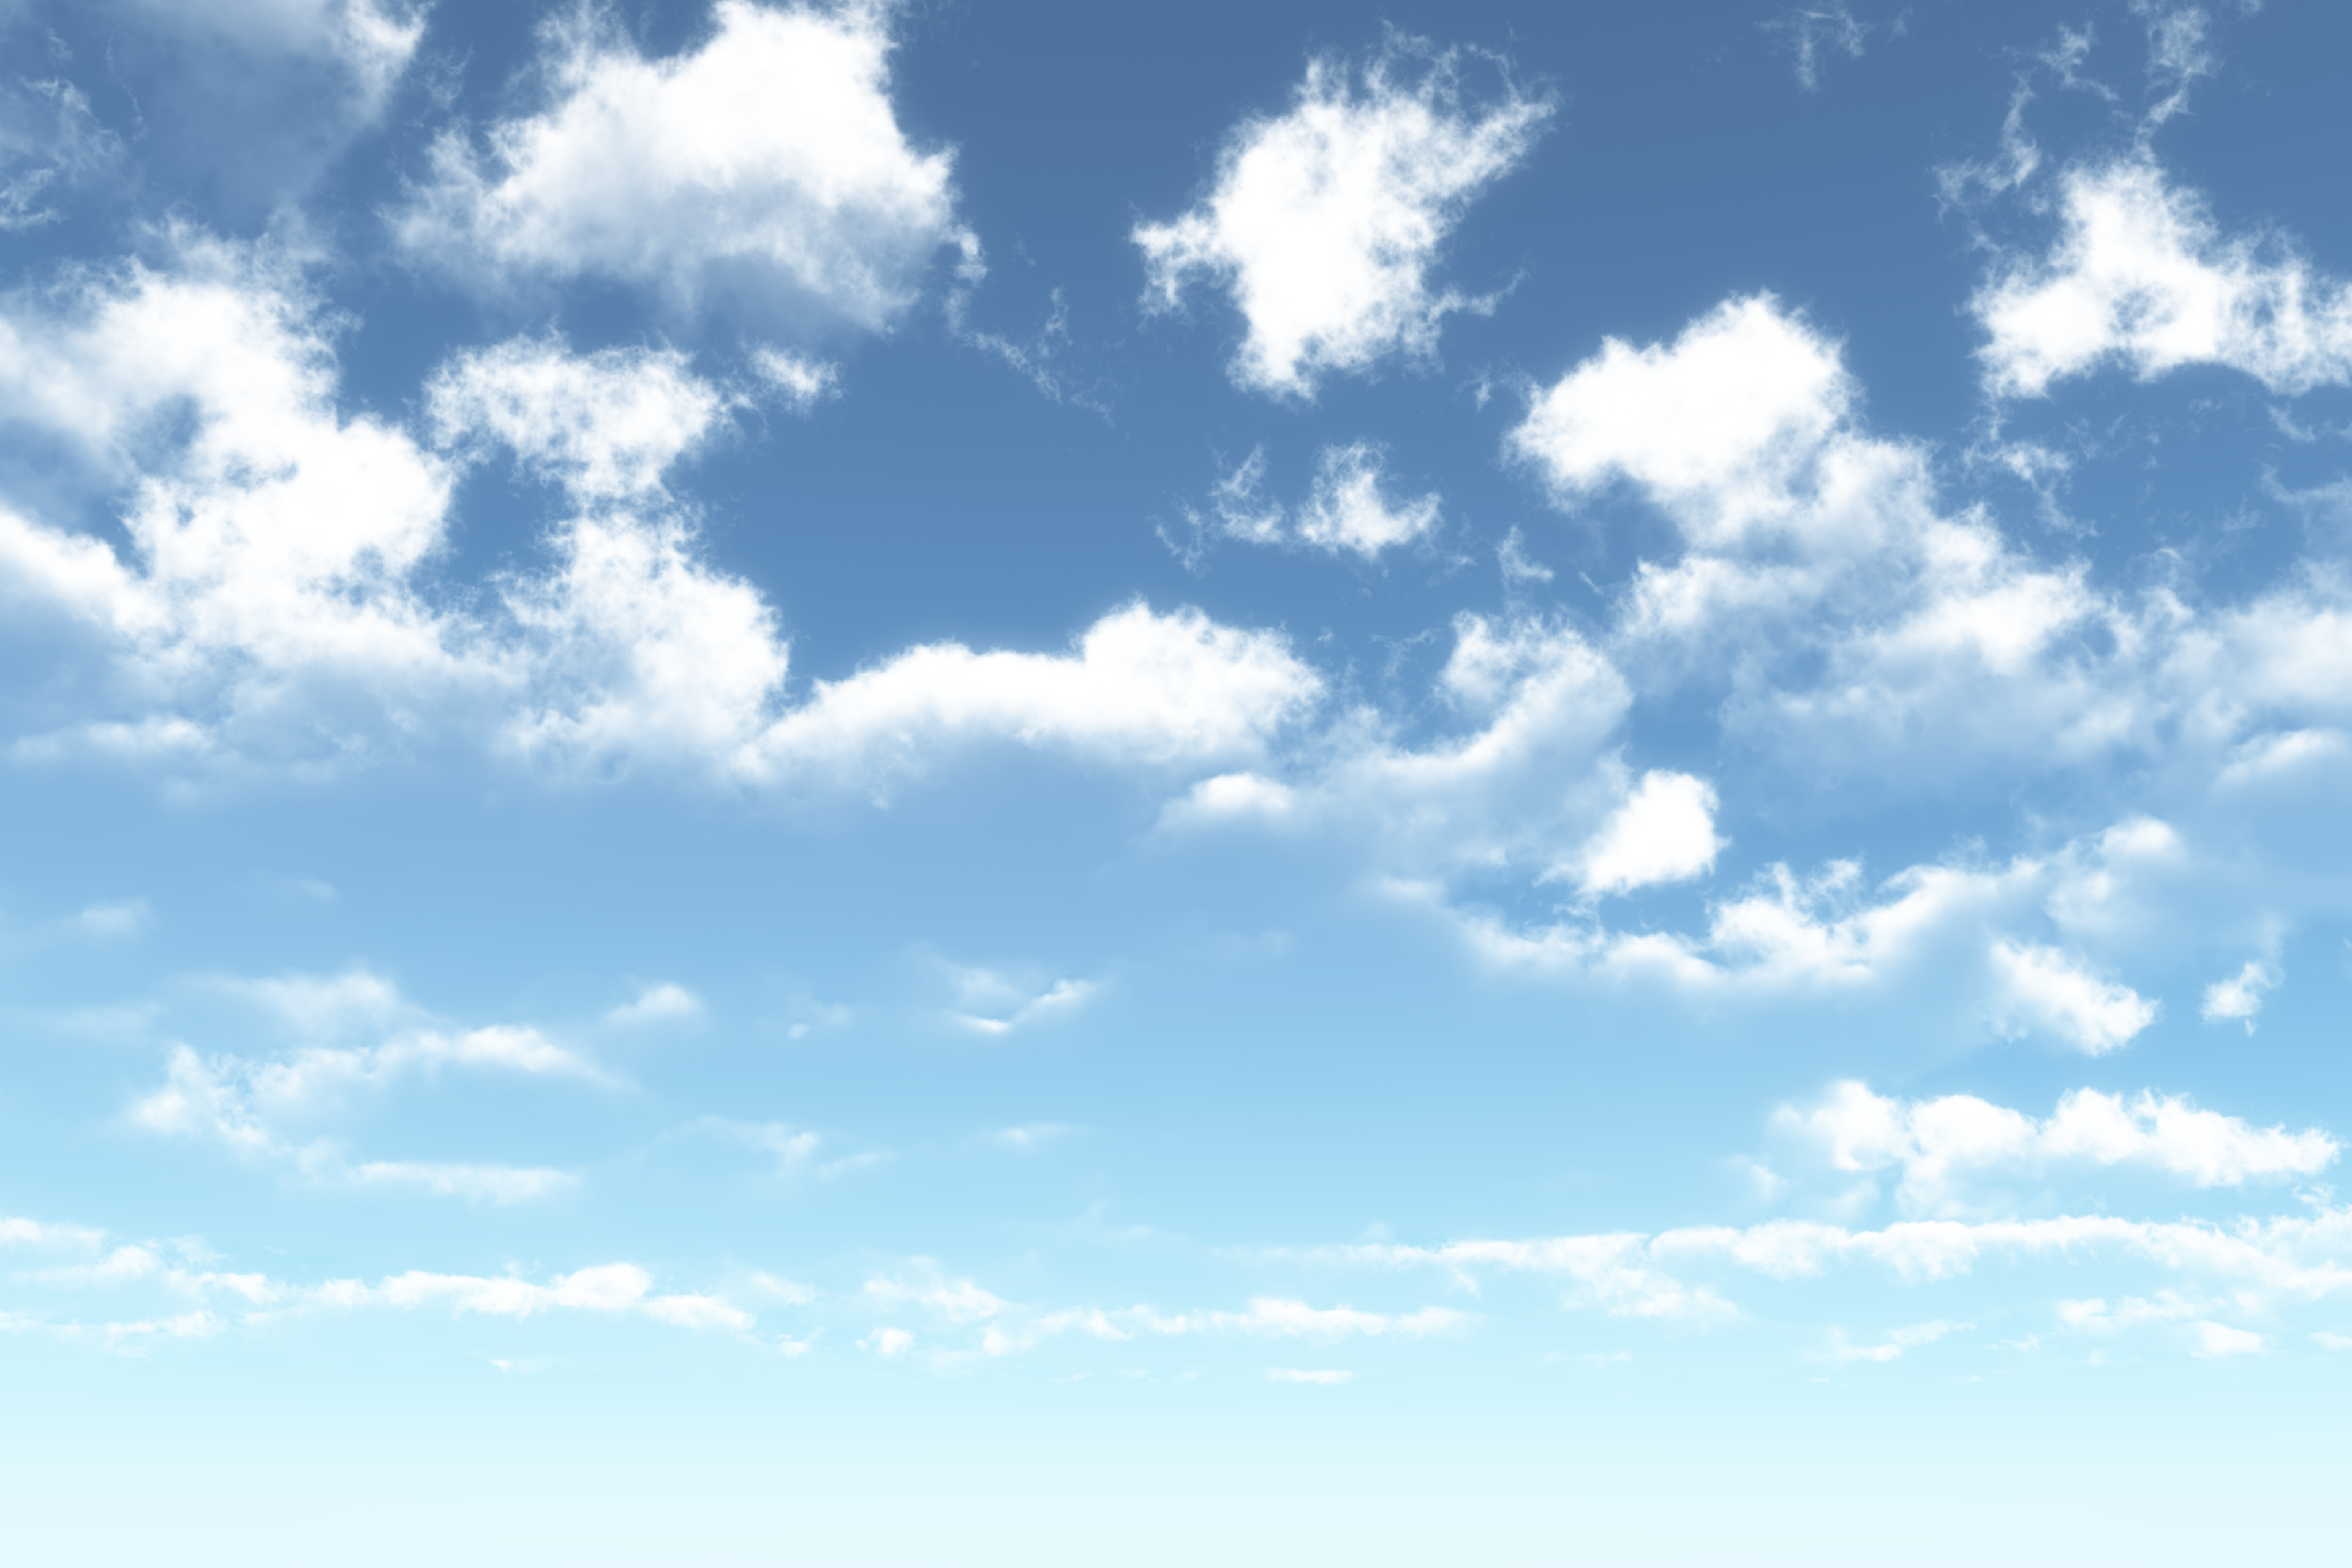 Psd by macsix on. Clouds clipart summer